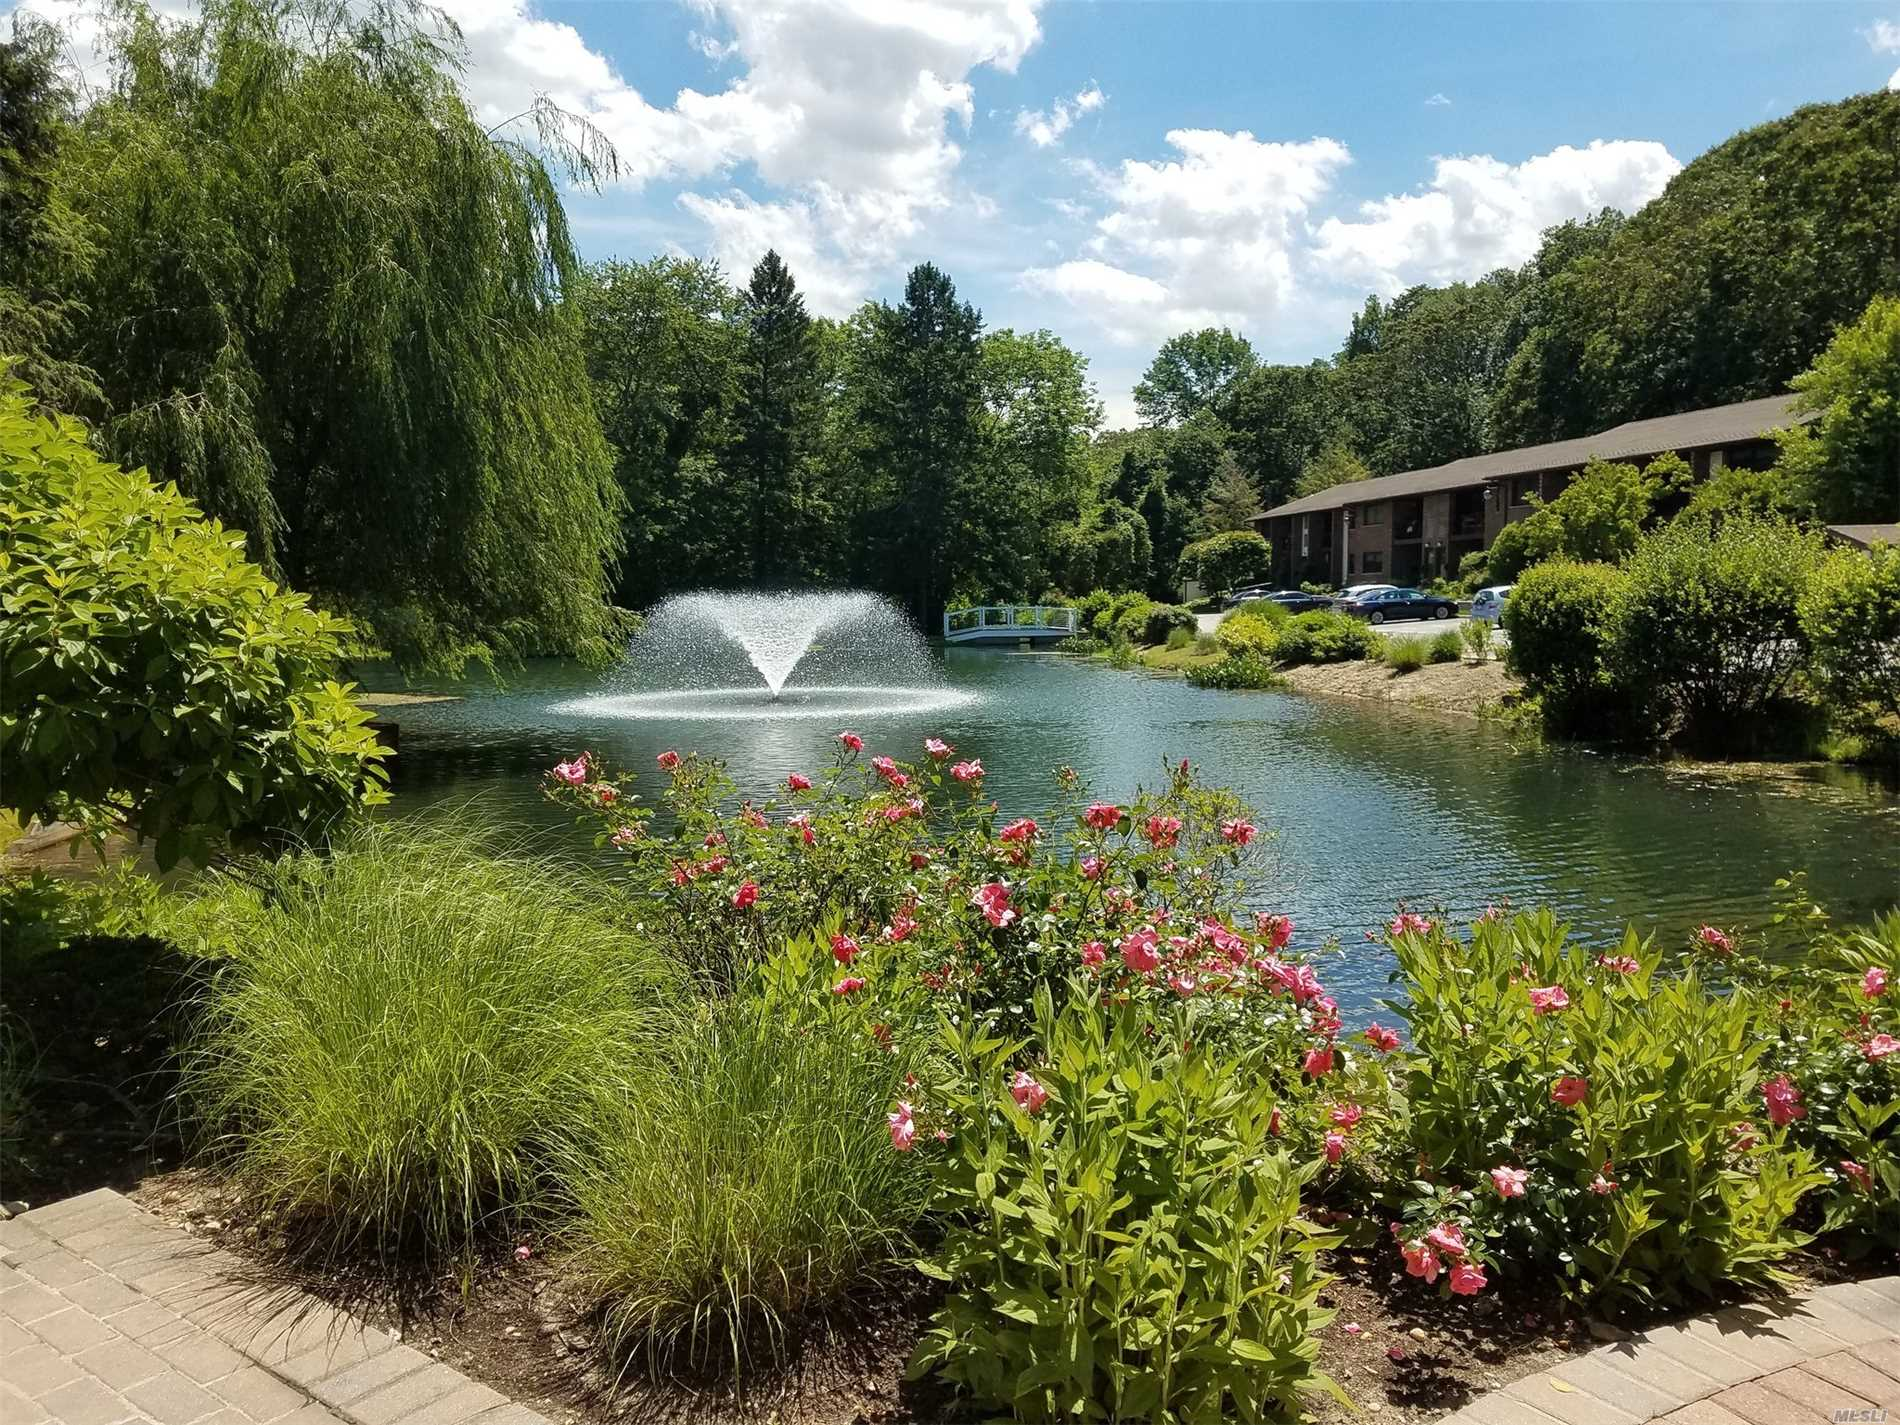 Landlord Pays Brokers Fee !!!! Beautiful Private Lake Community. Apartment Includes, Reserved Parking Spot, Fitness Rm/Snow Removal/Garbage/Sewer/4'X4'X8' Storage Locker, Cen Air Conditioning, Separate Laundry Centers. *1 Month Security Fee W/700 Experian Credit Score, 2 Months W/Min 650 Score. Two Indoor Cats + 1 Dog Under 30Lbs Allowed